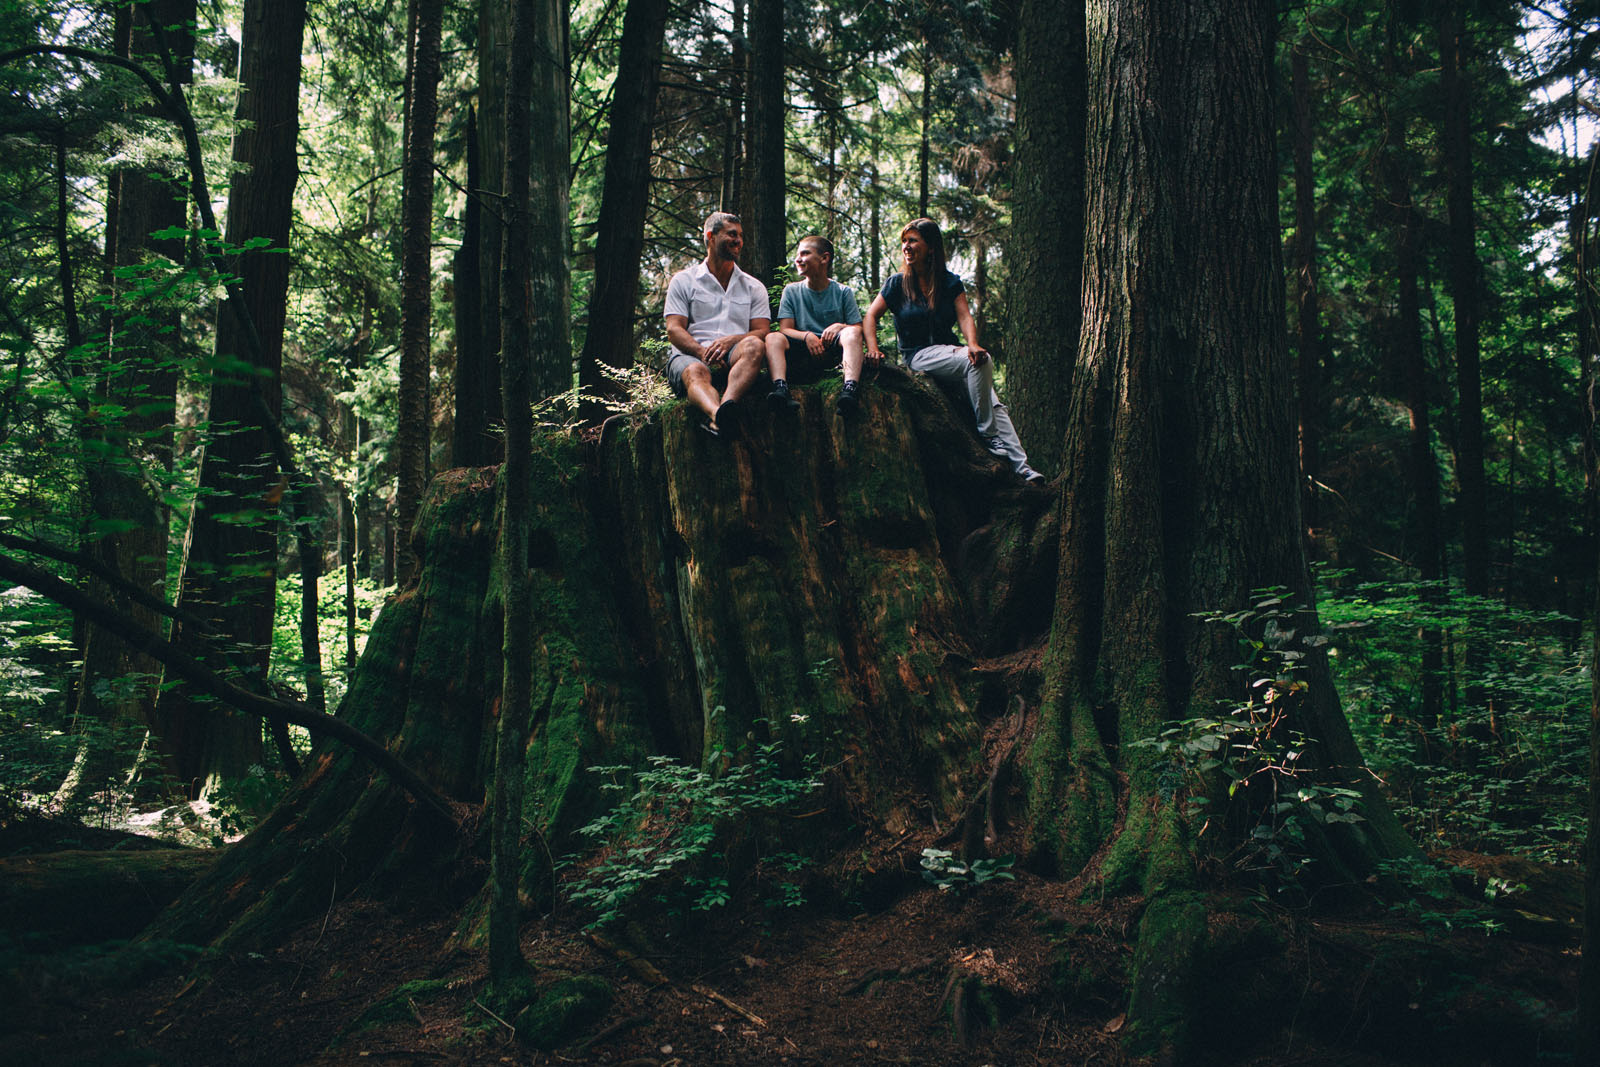 Stanley-Park-family-portrait-Vancouver-photographer-Sam-Wong-of-Visual-Cravings_07